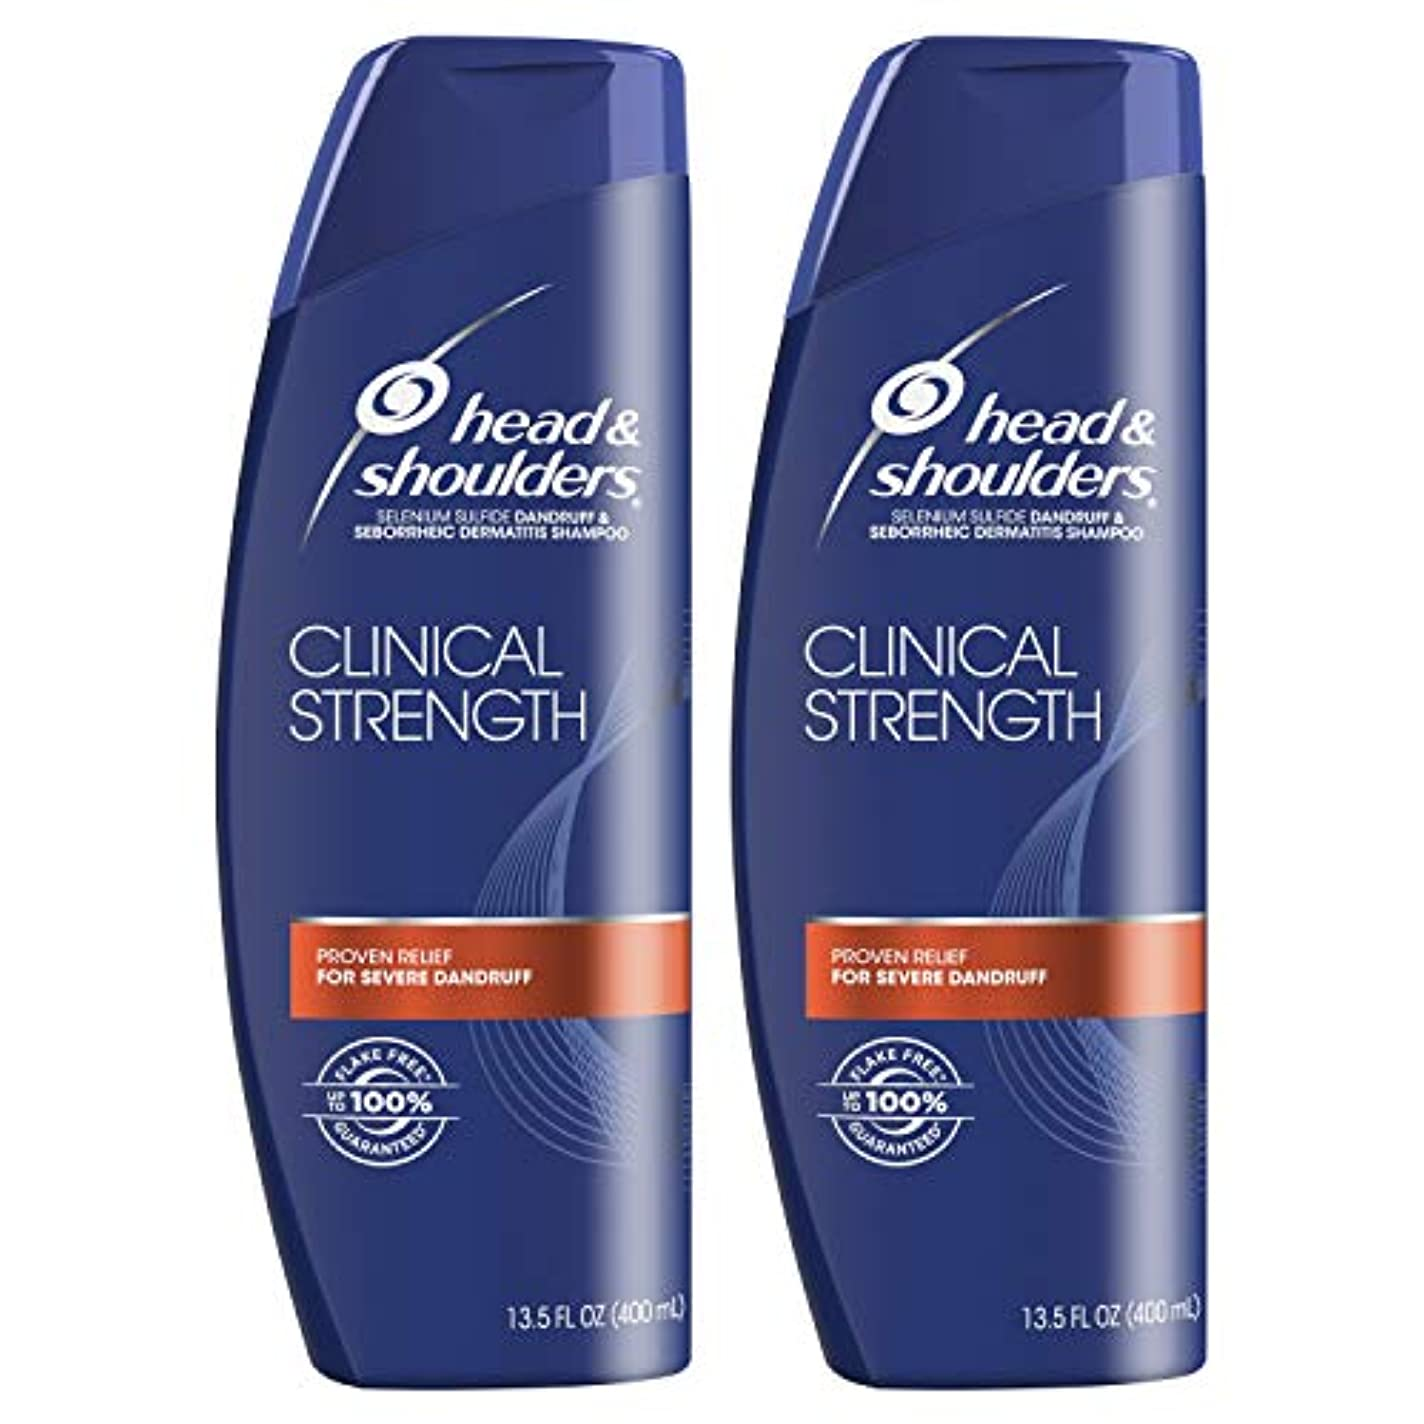 再現する閃光前者Head and Shoulders Clinical Strength Dandruff and Seborrheic Dermatitisシャンプー、13.5 FL OZ